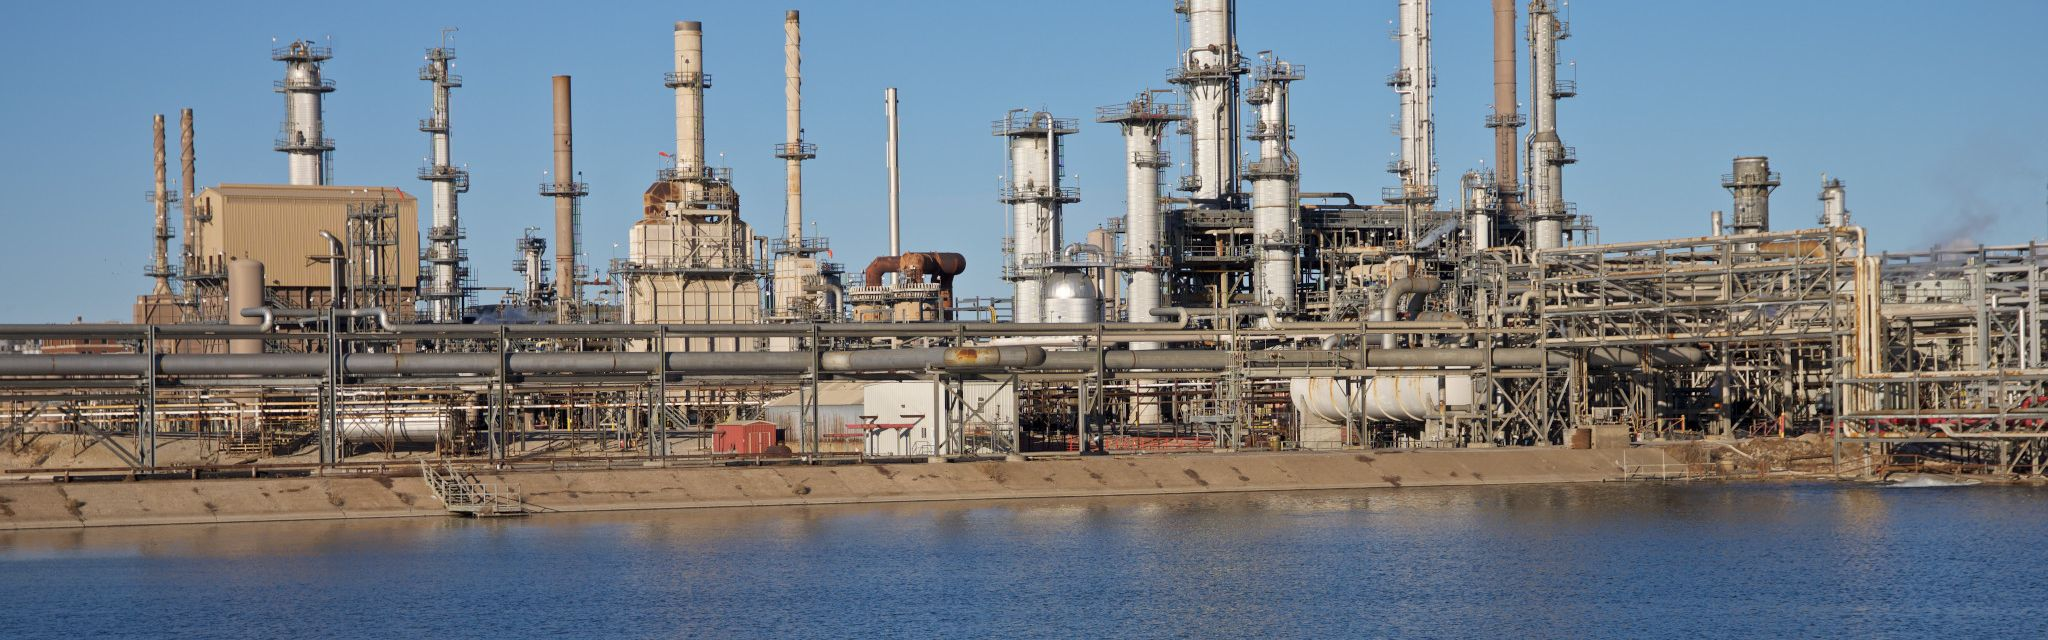 Daytime shot of the Ponca City Refinery